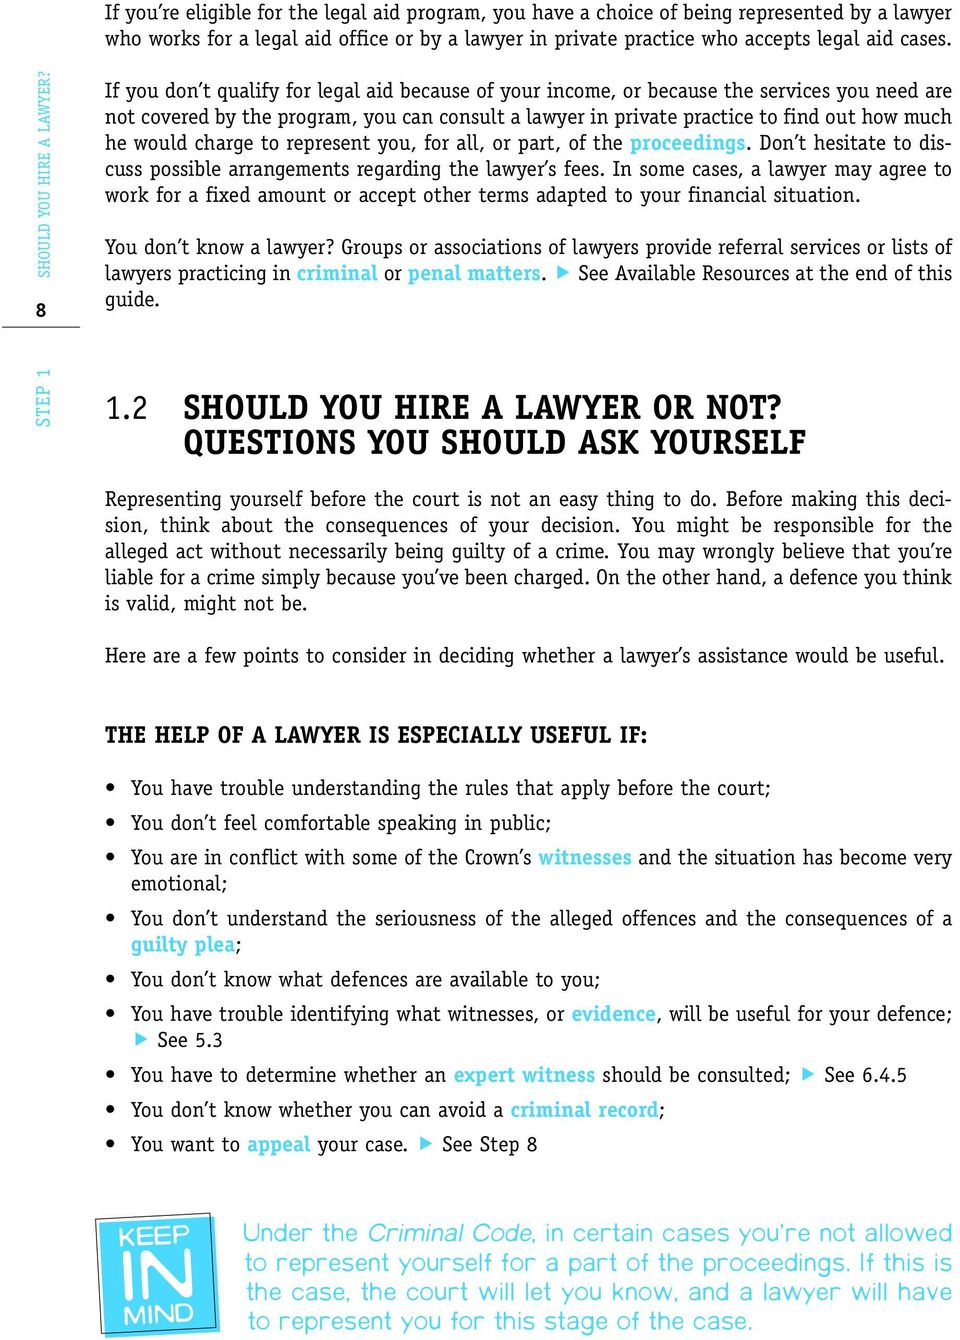 8 If you don t qualify for legal aid because of your income, or because the services you need are not covered by the program, you can consult a lawyer in private practice to find out how much he